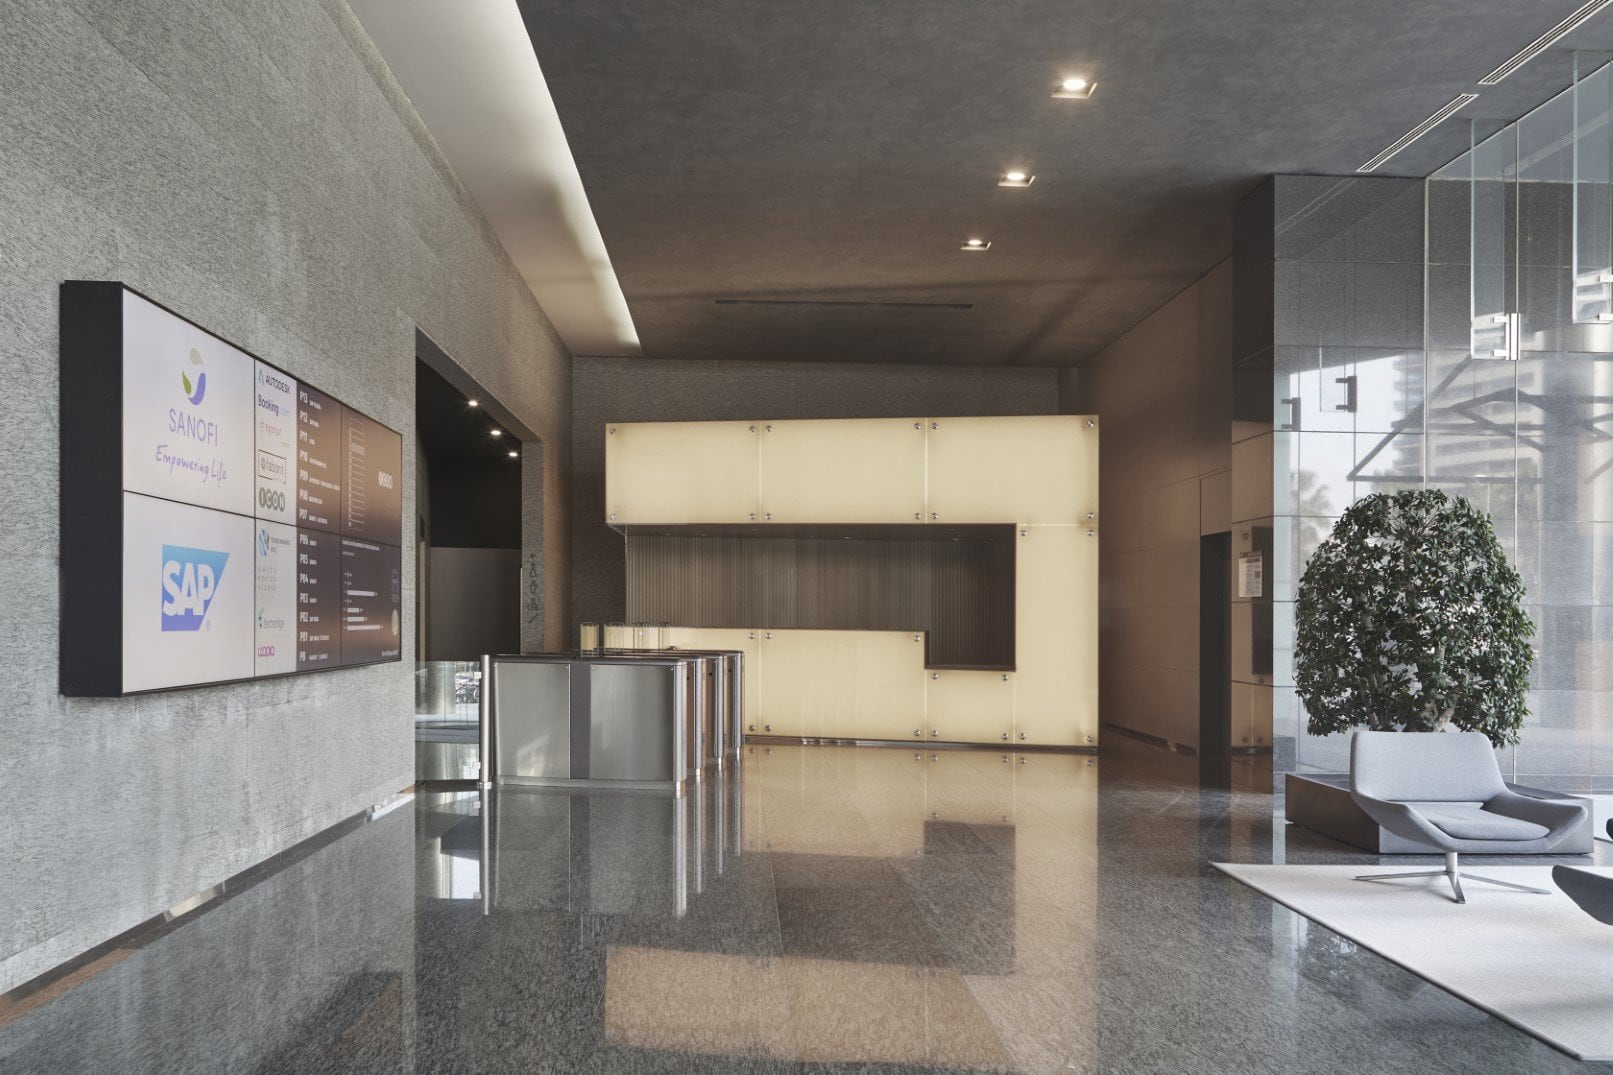 Common areas of the TDM office building